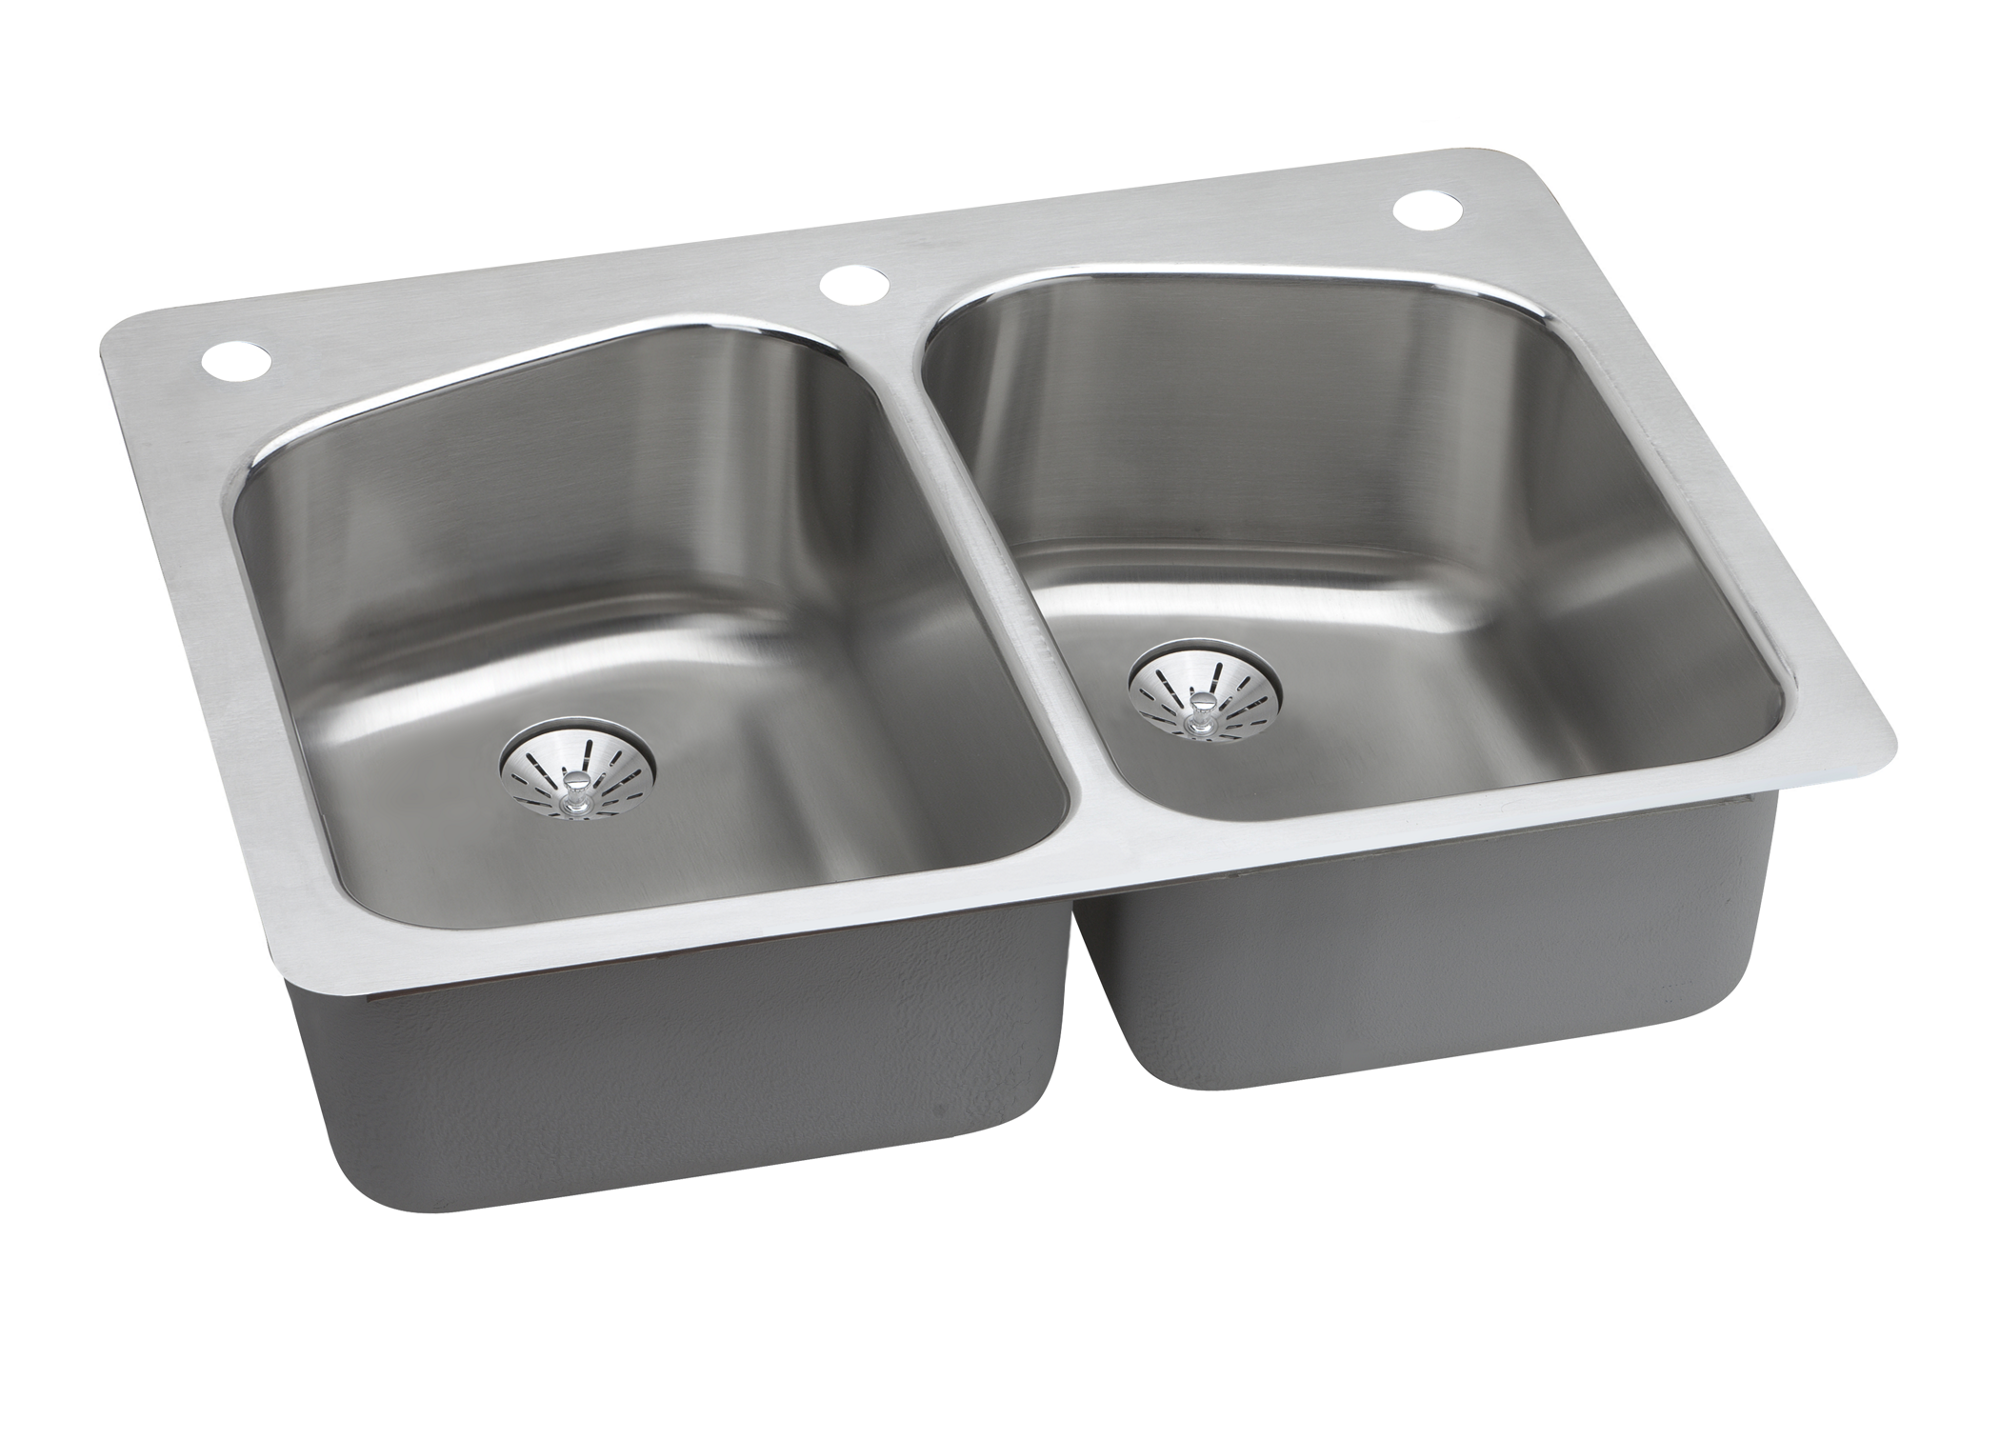 Elkay Lustertone Classic Stainless Steel 33 X 22 X 9 Equal Double Bowl Dual Mount Sink With Perfect Drain